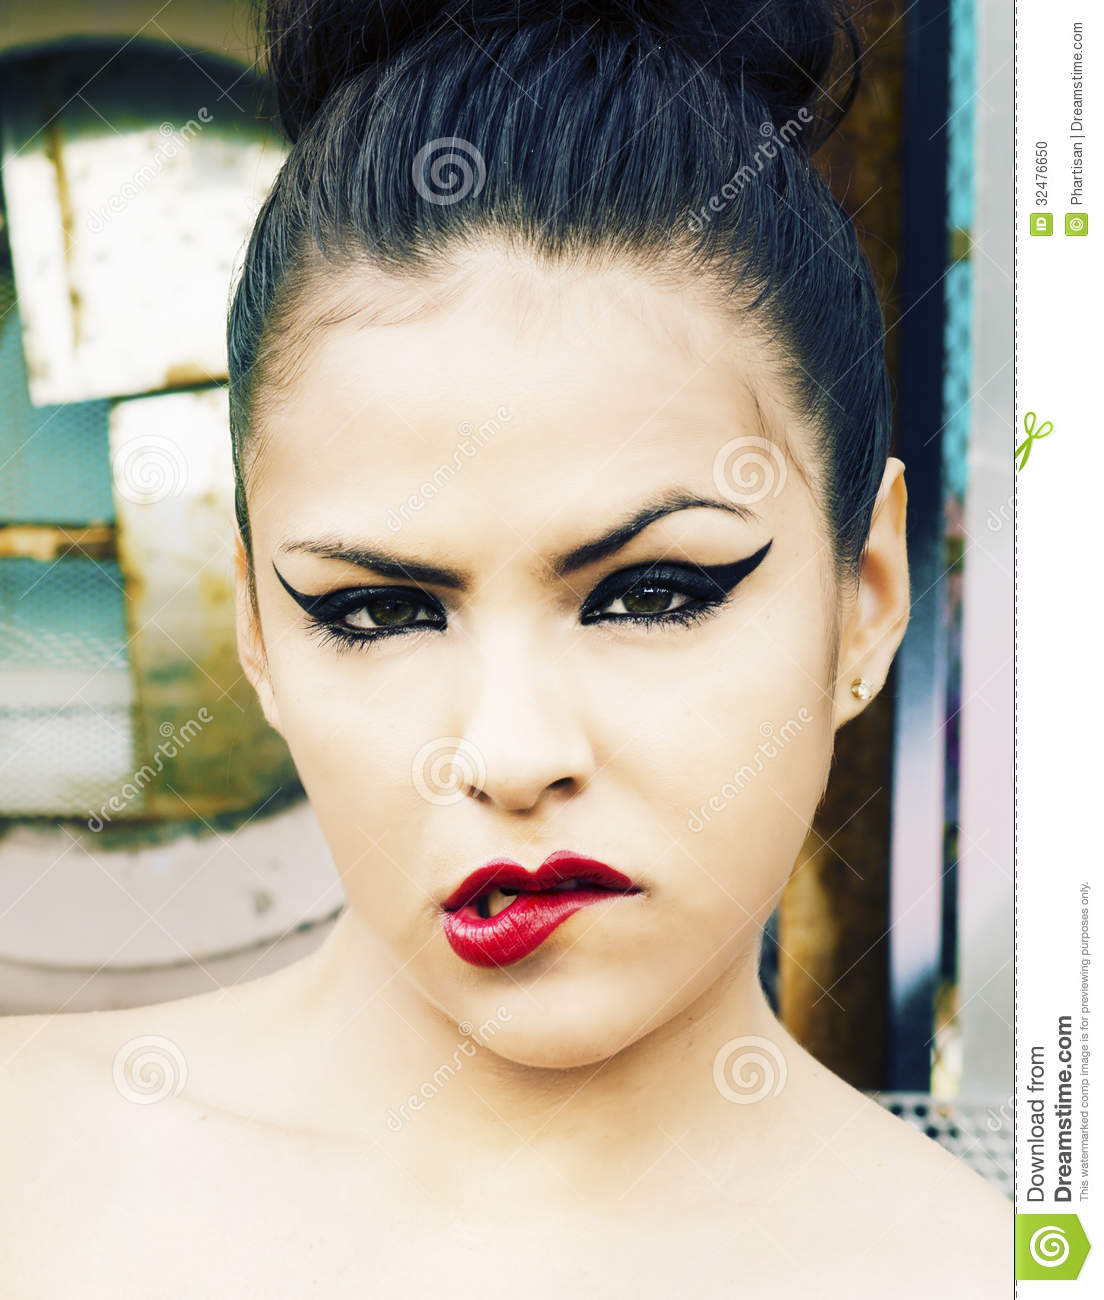 Edgy Fashion Portrait Of Young Woman Stock Photo - Image 32476650